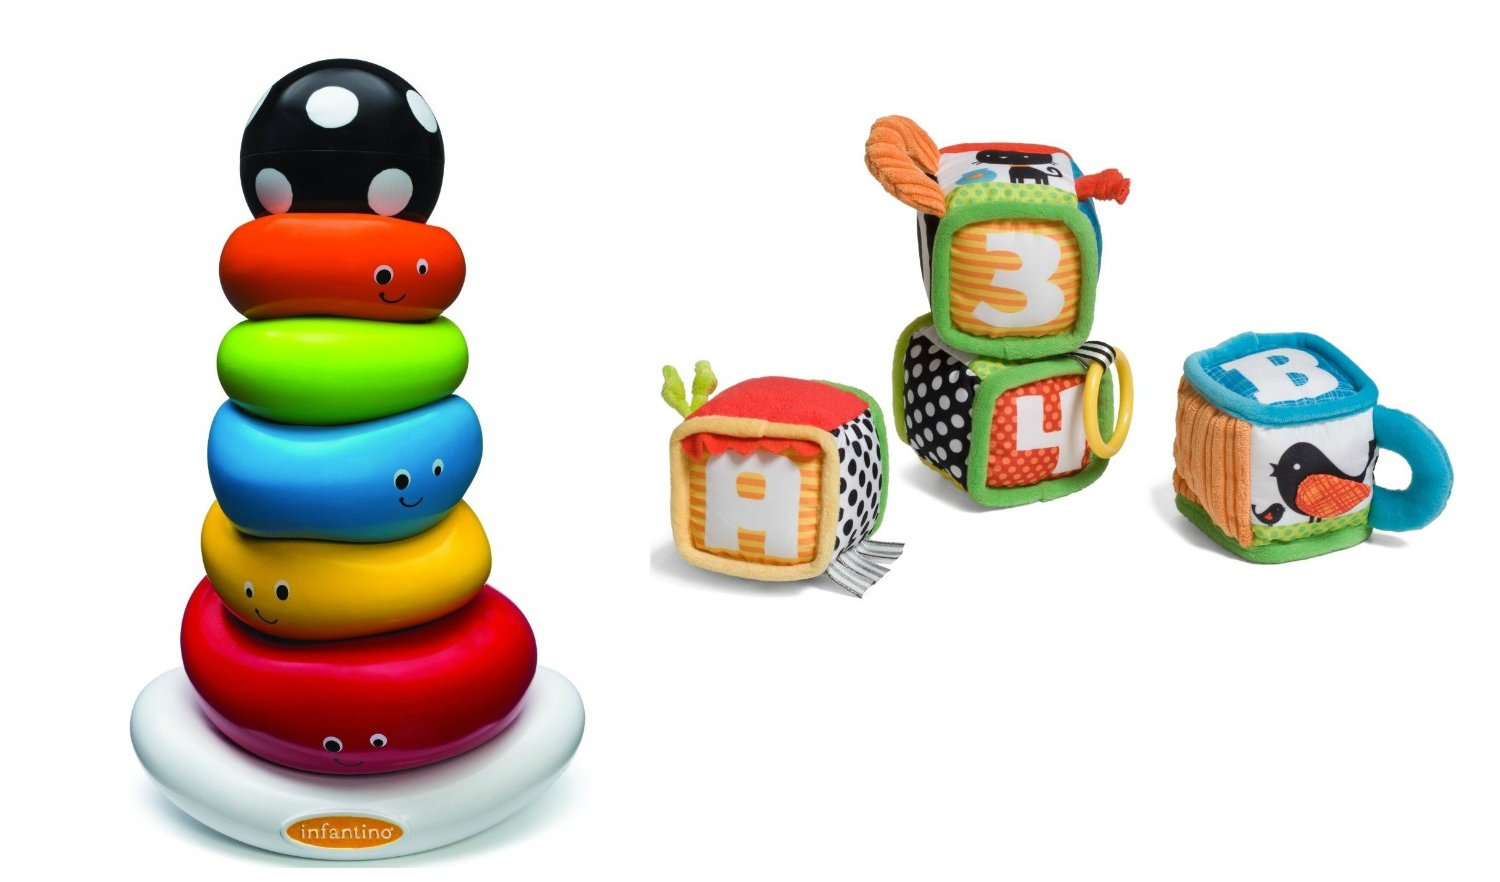 Infantino Discover and Play Soft Blocks with Funny Face Ring Stacker by Infantino